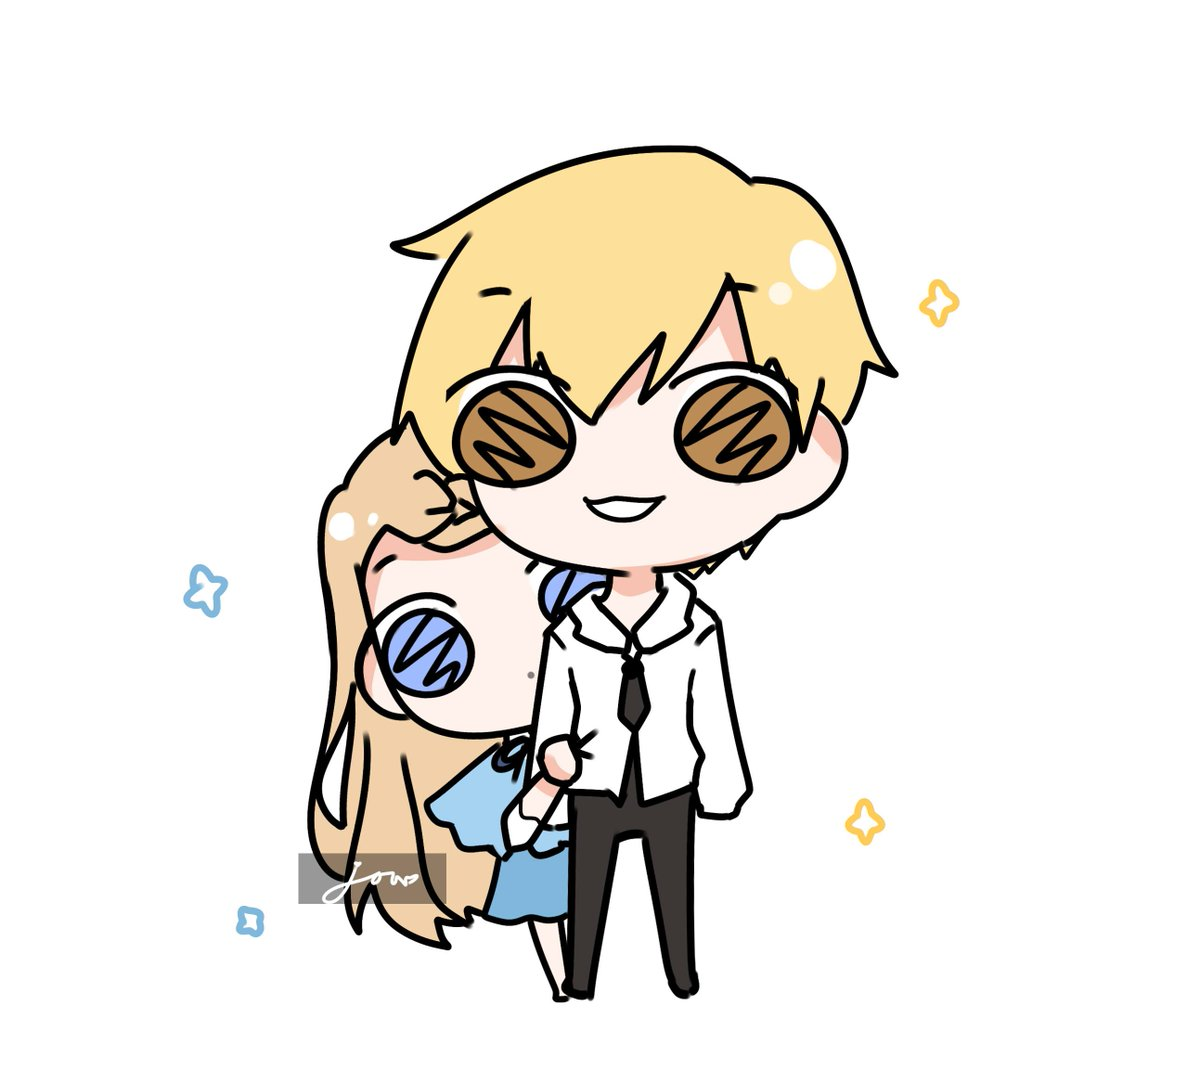 Chibi doodle commission for @Jrohmm3   Thanks so much for commissioning me ^^  Chibi doodle comms open for $10 if youre interested feel free to dm me!  Heres the form: https://t.co/ONCo8dHlml https://t.co/m4JzVOC151